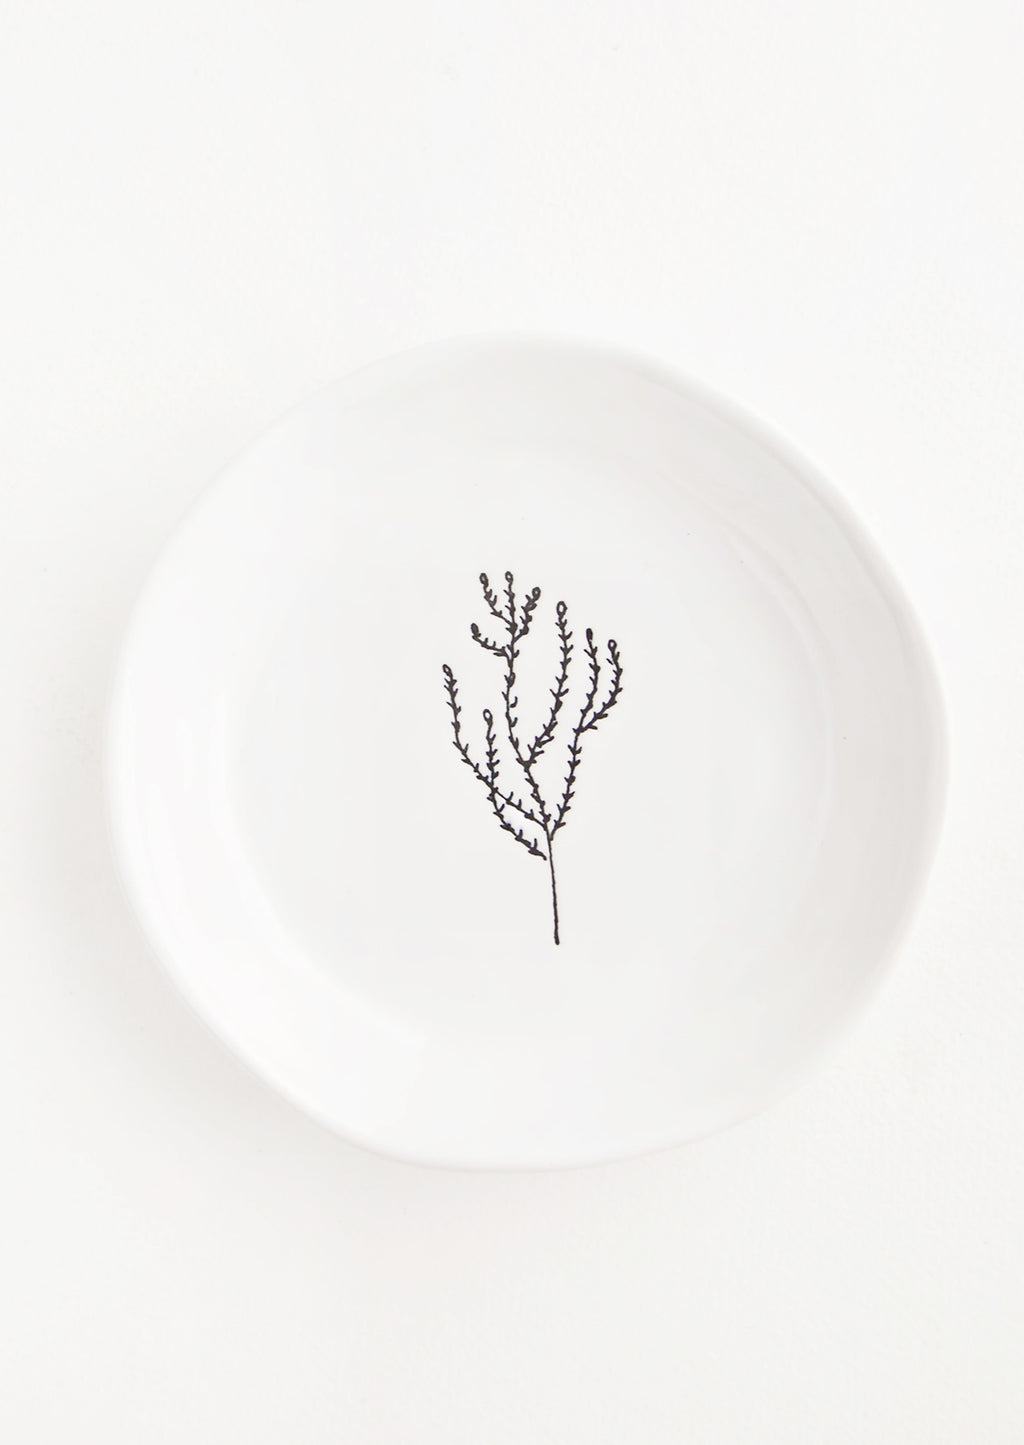 Seaweed: A round white ceramic dish with a single etched image of seaweed in black.